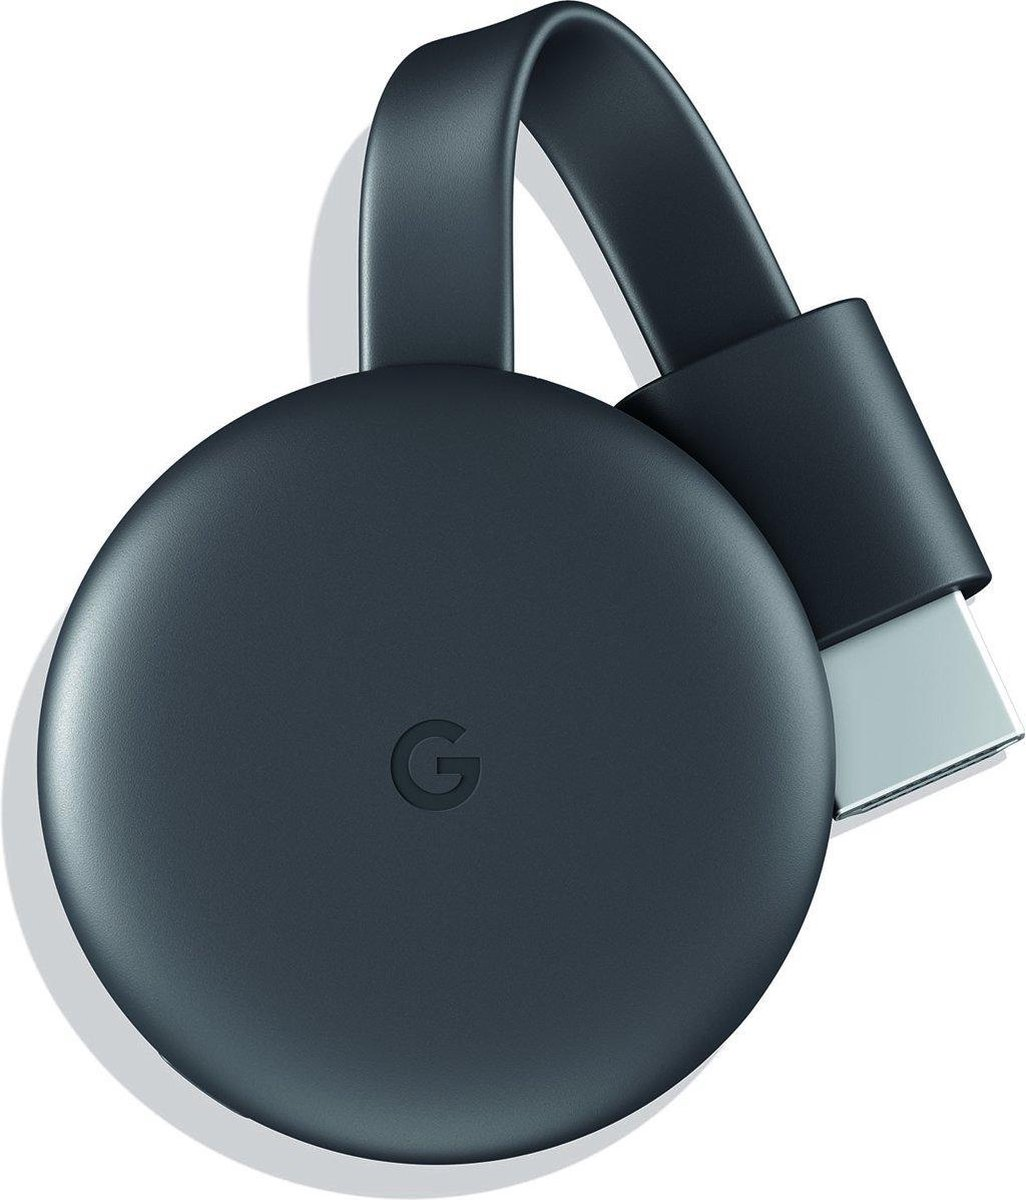 Google Chromecast 3 Smart - TV-dongle - Full HD / Zwart - Google